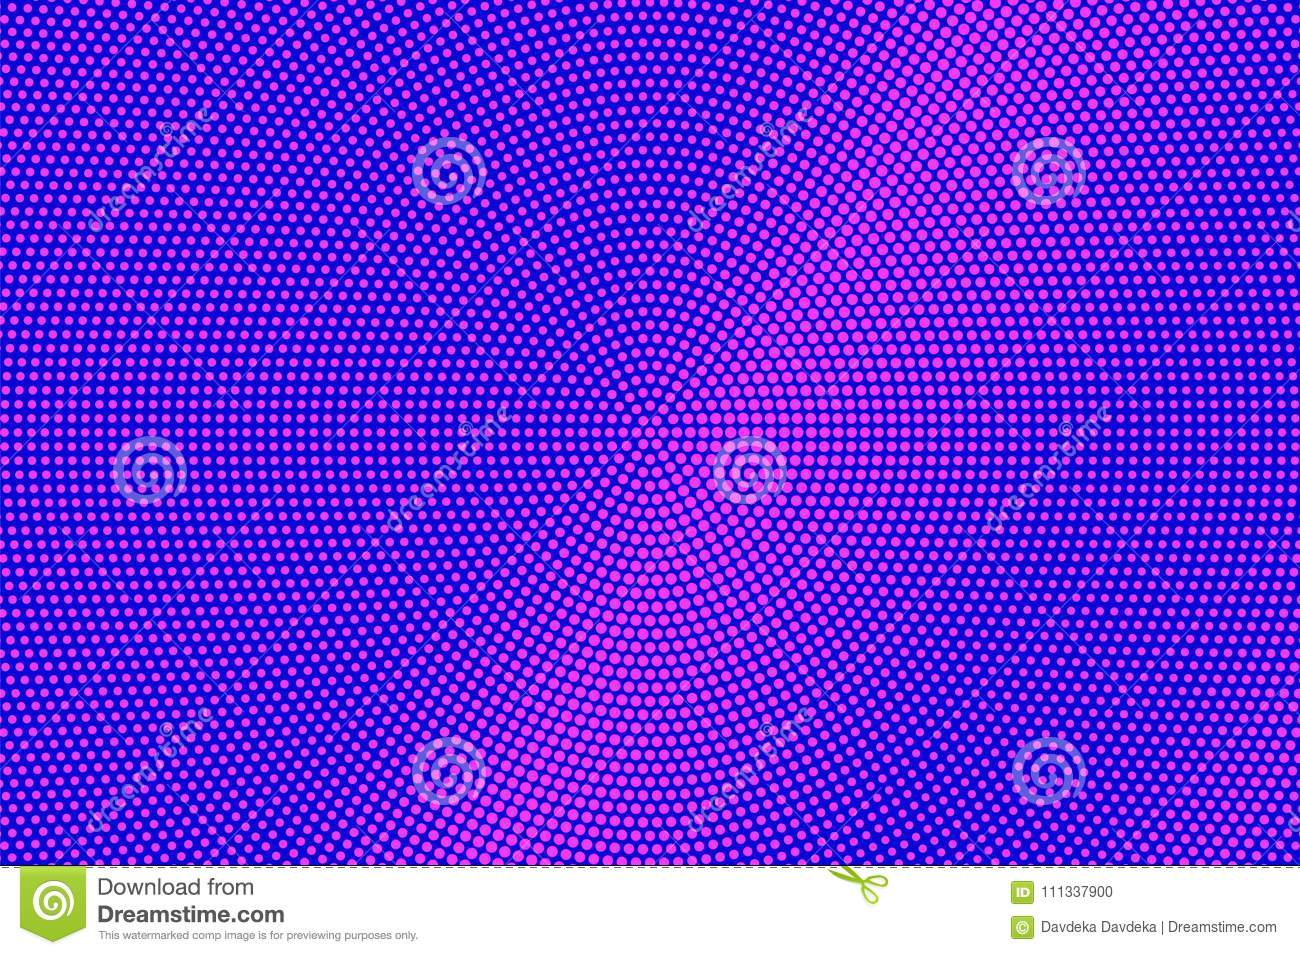 Blue Pink Dotted Halftone. Radial Subtle Dotted Gradient ...